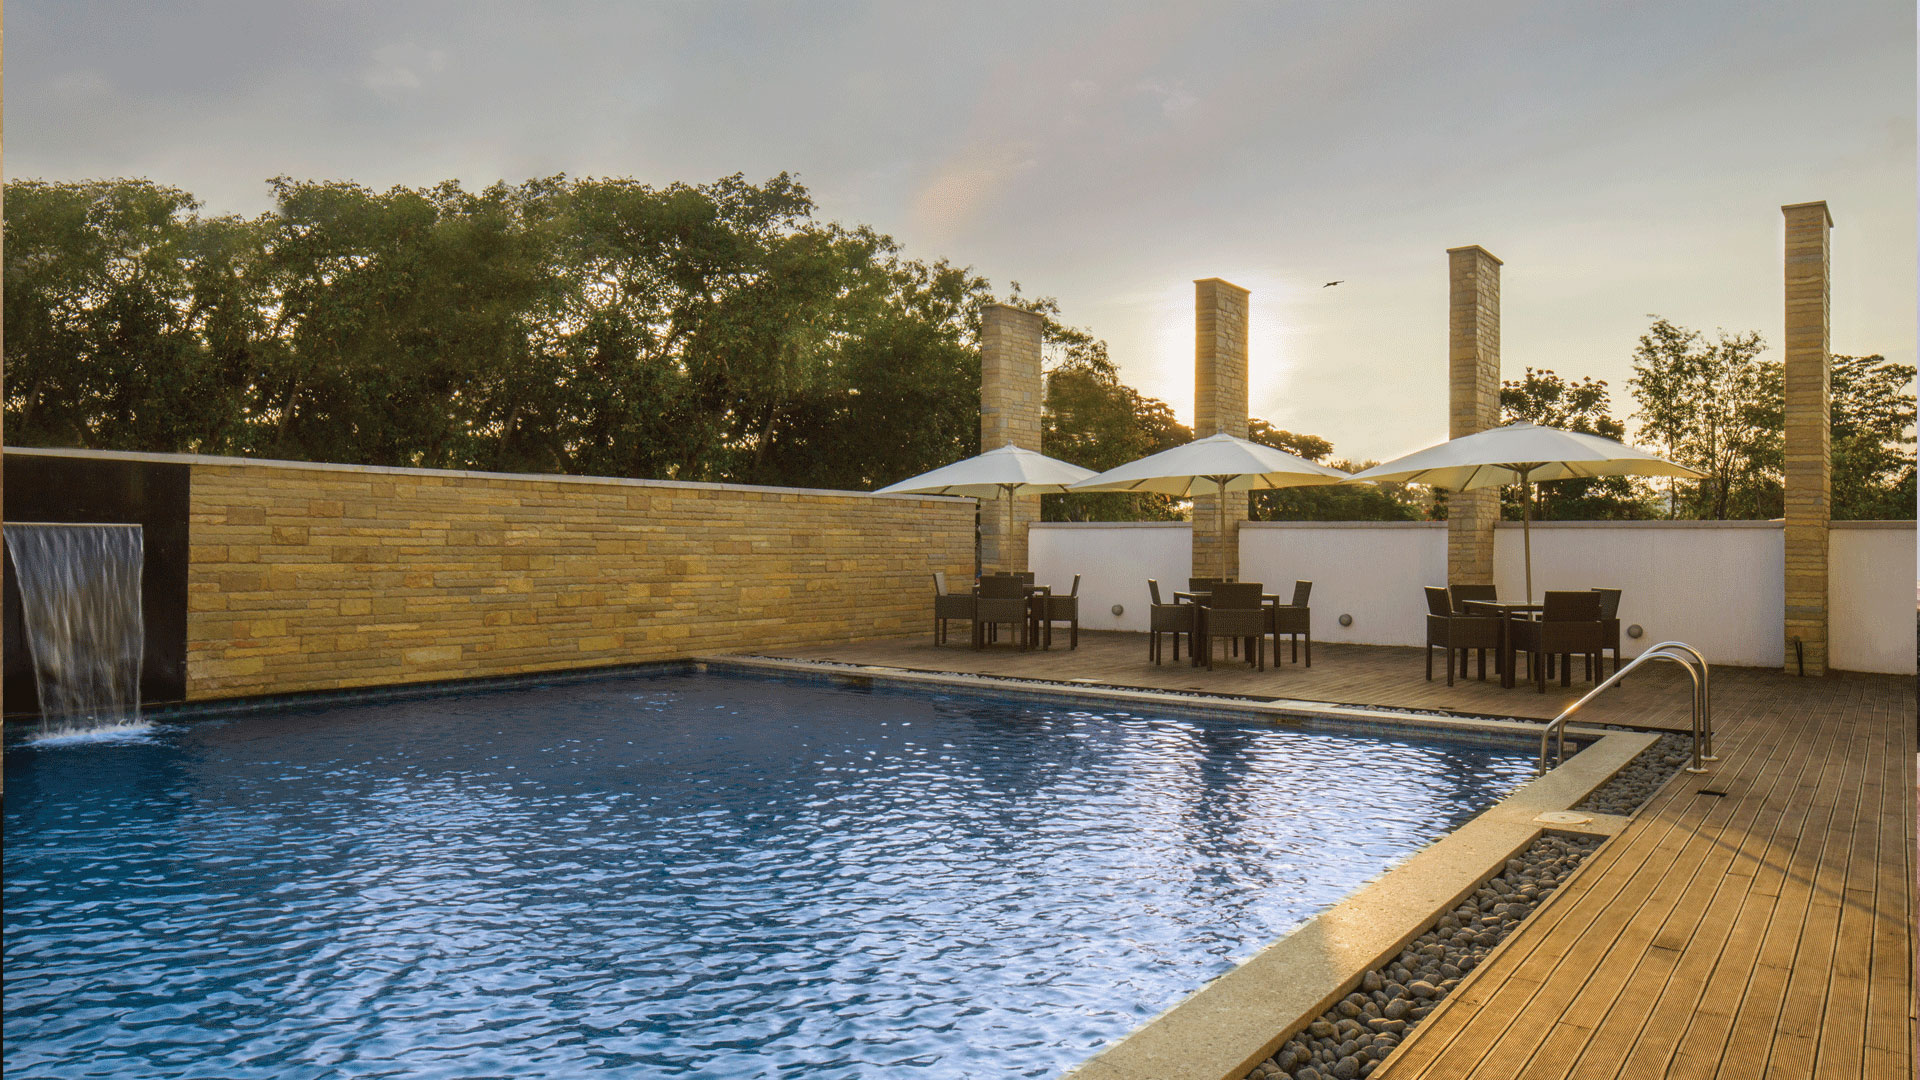 prestige-white-meadows-Villas-in- Whitefield-Bangalore-Image-02